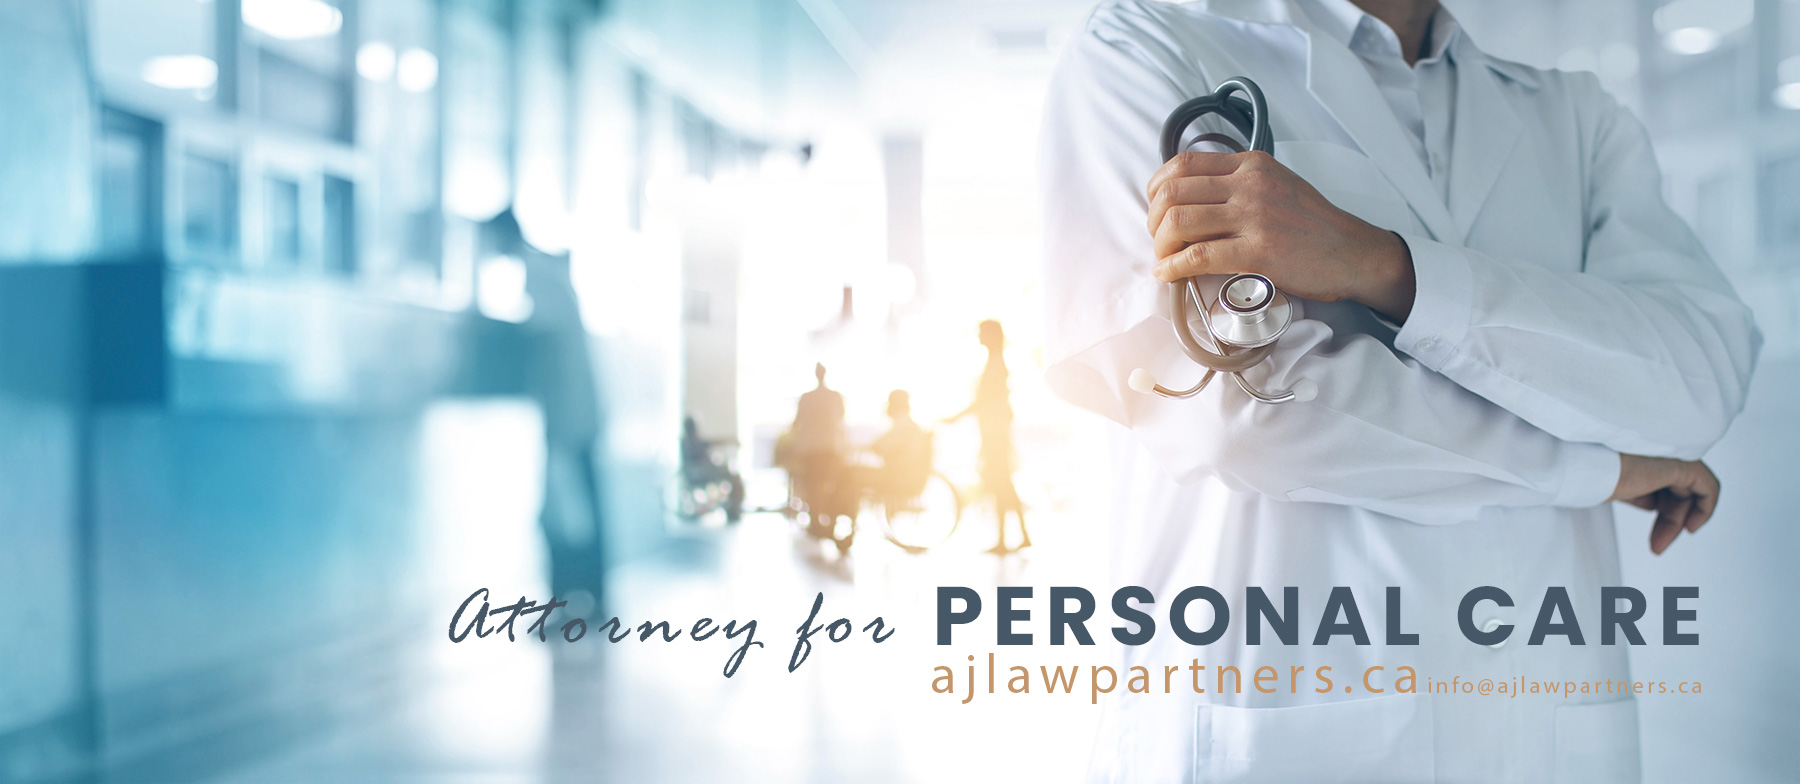 2-types-of-poa-attorney-for-personal-care-power-of-attorney-aj-law-llp